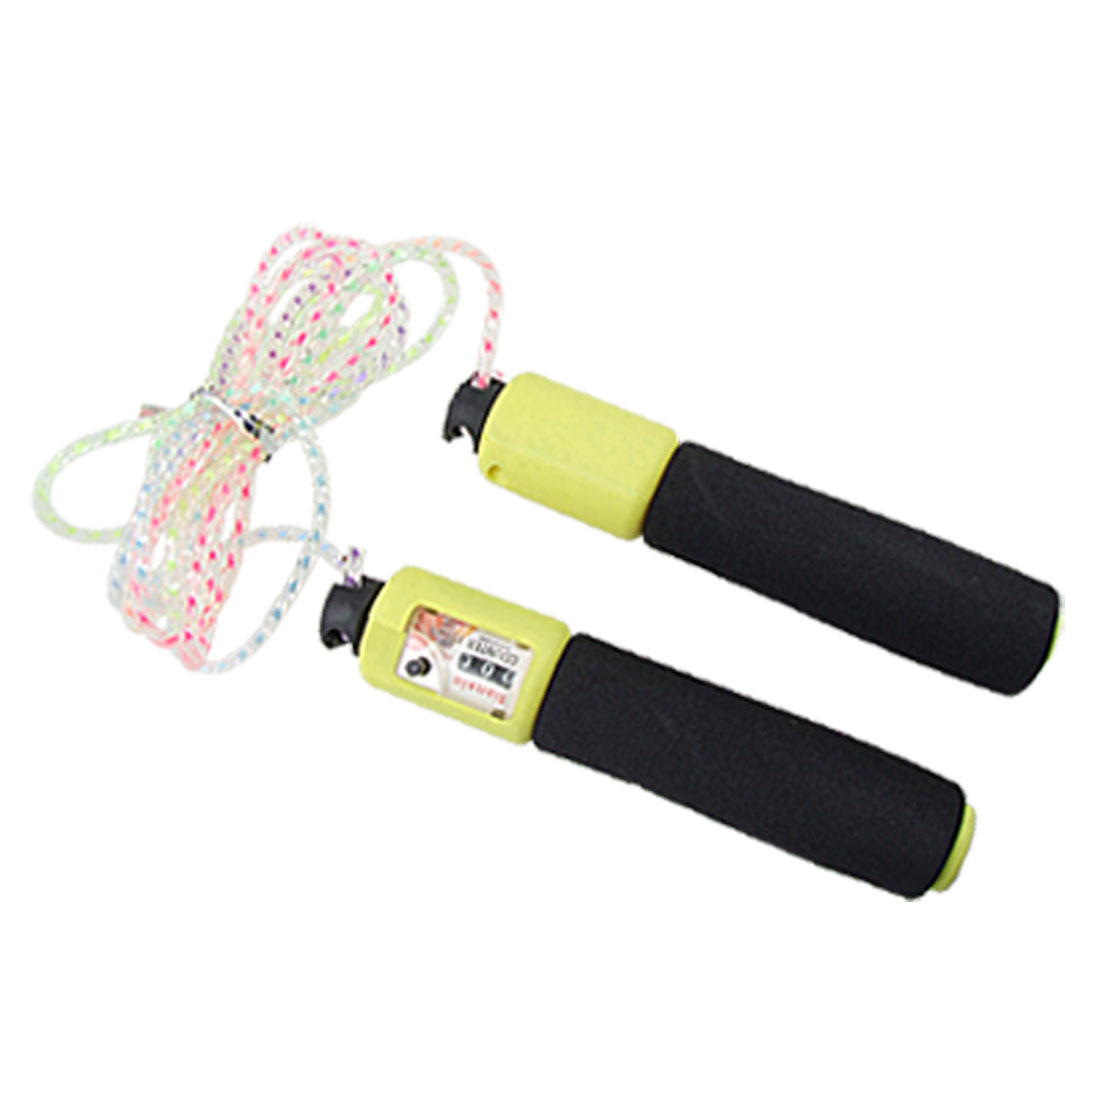 Foam Wrapped Handle Fitness Counting Jump Skipping Rope